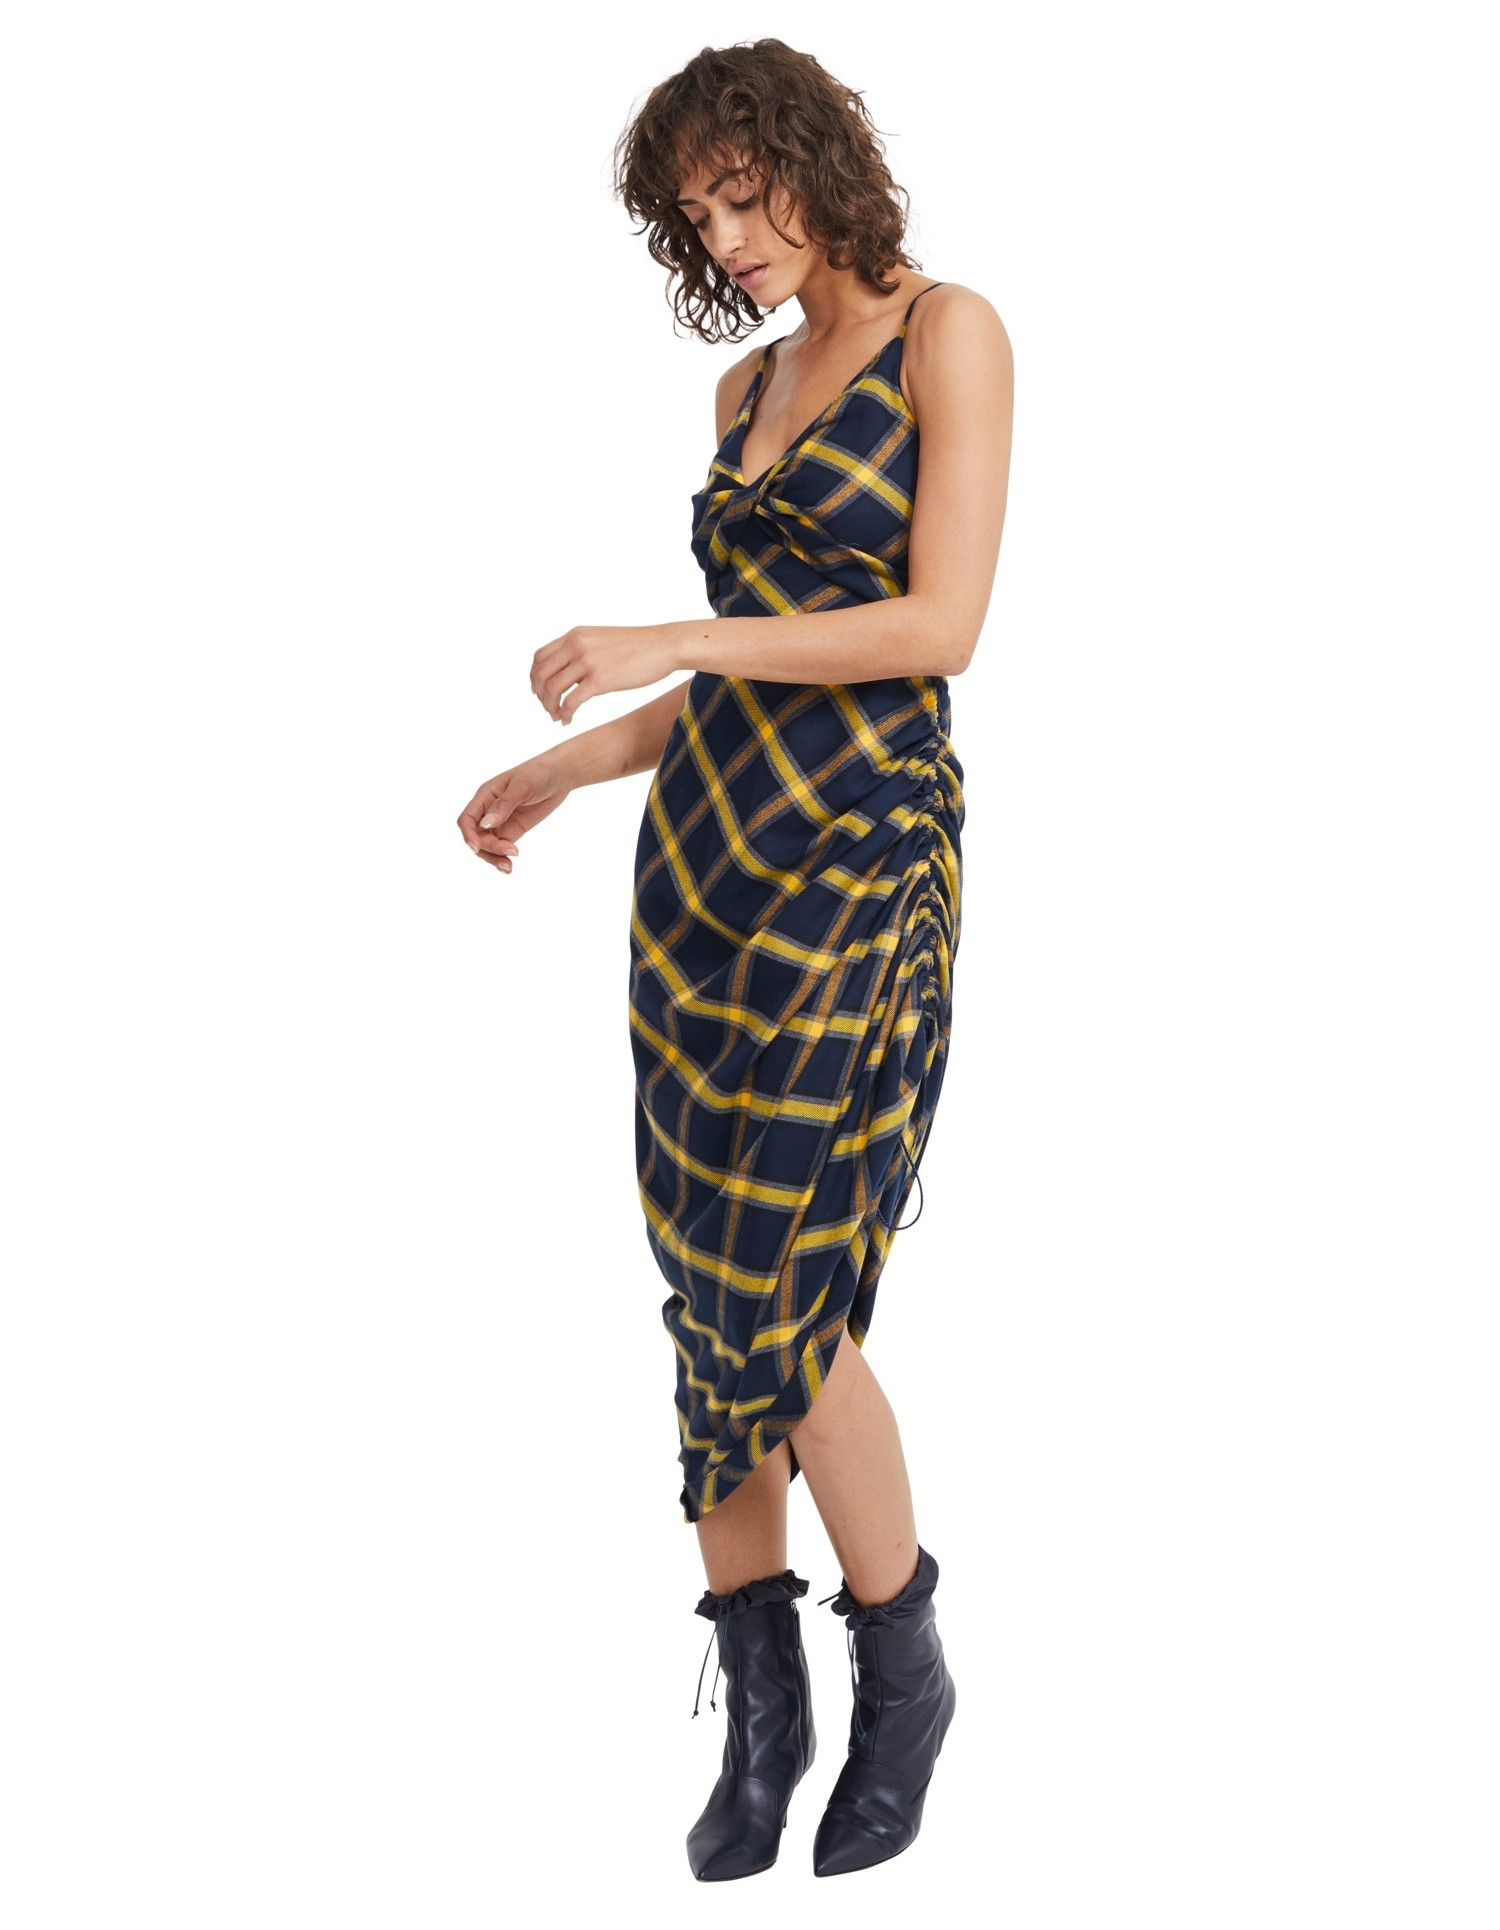 MONSE Twisted Plaid Slip Dress in Midnight and Yellow on Model Front View